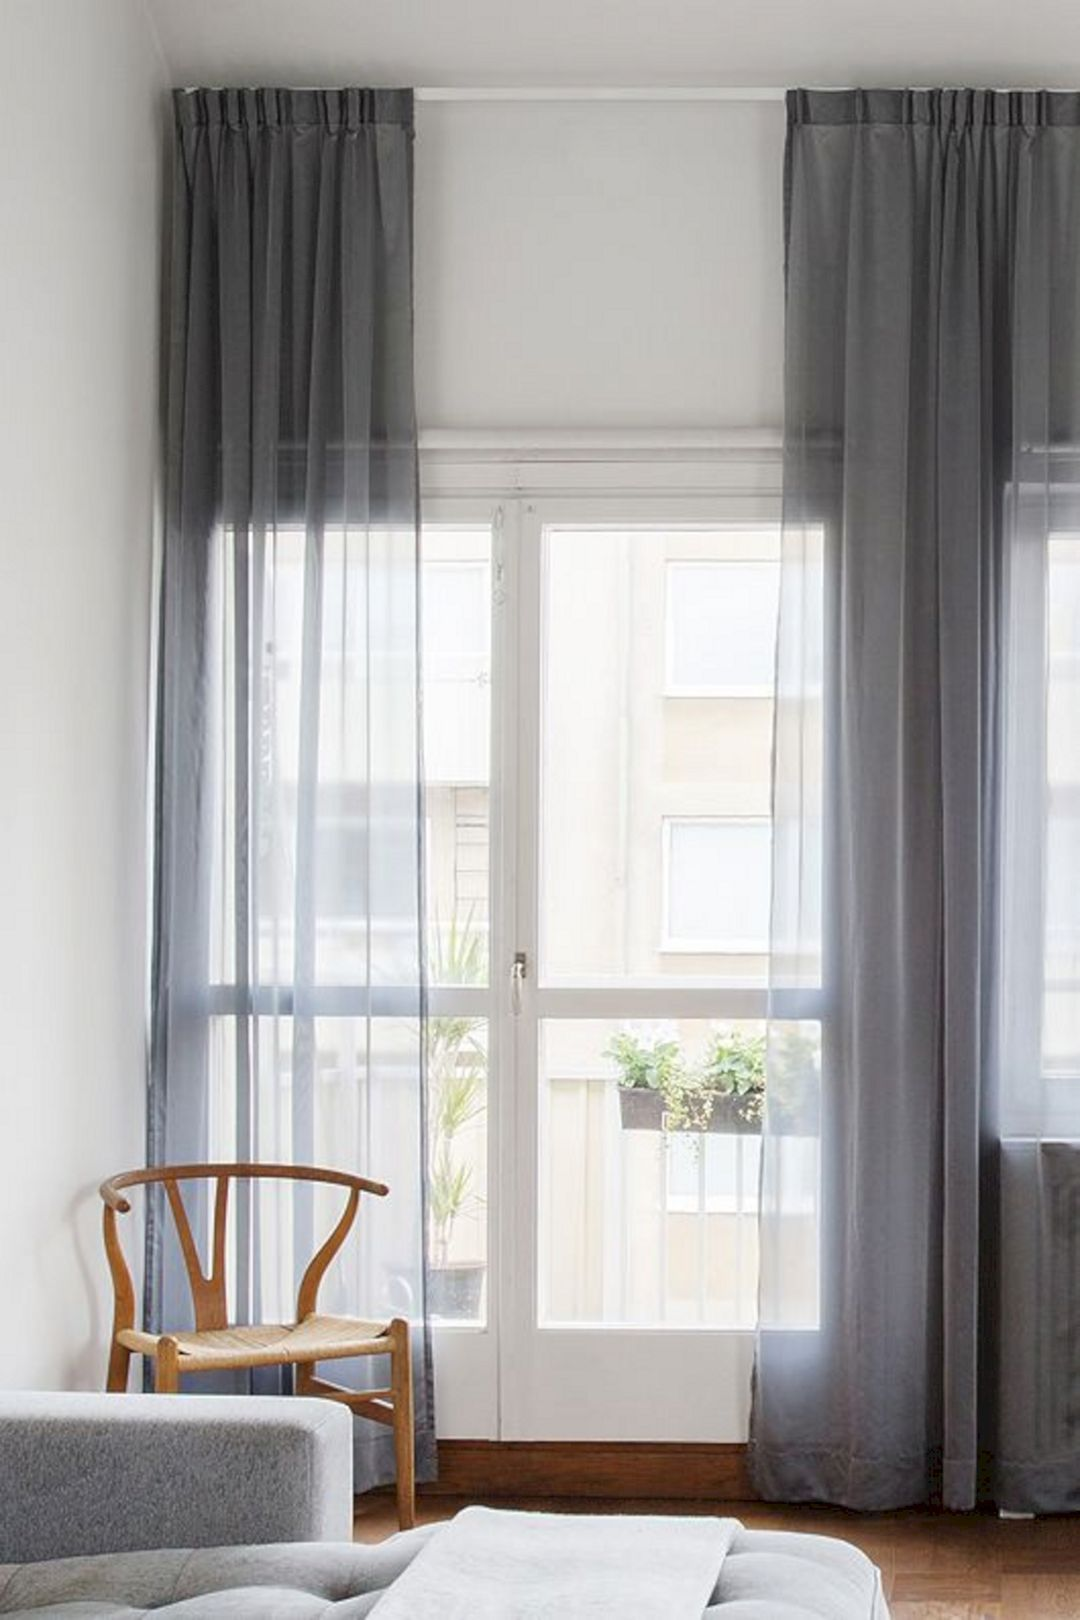 10 Cool Living Room Curtain You Need To Have Teracee Curtains Living Room Living Room Decor Curtains Home Curtains #unique #living #room #curtains